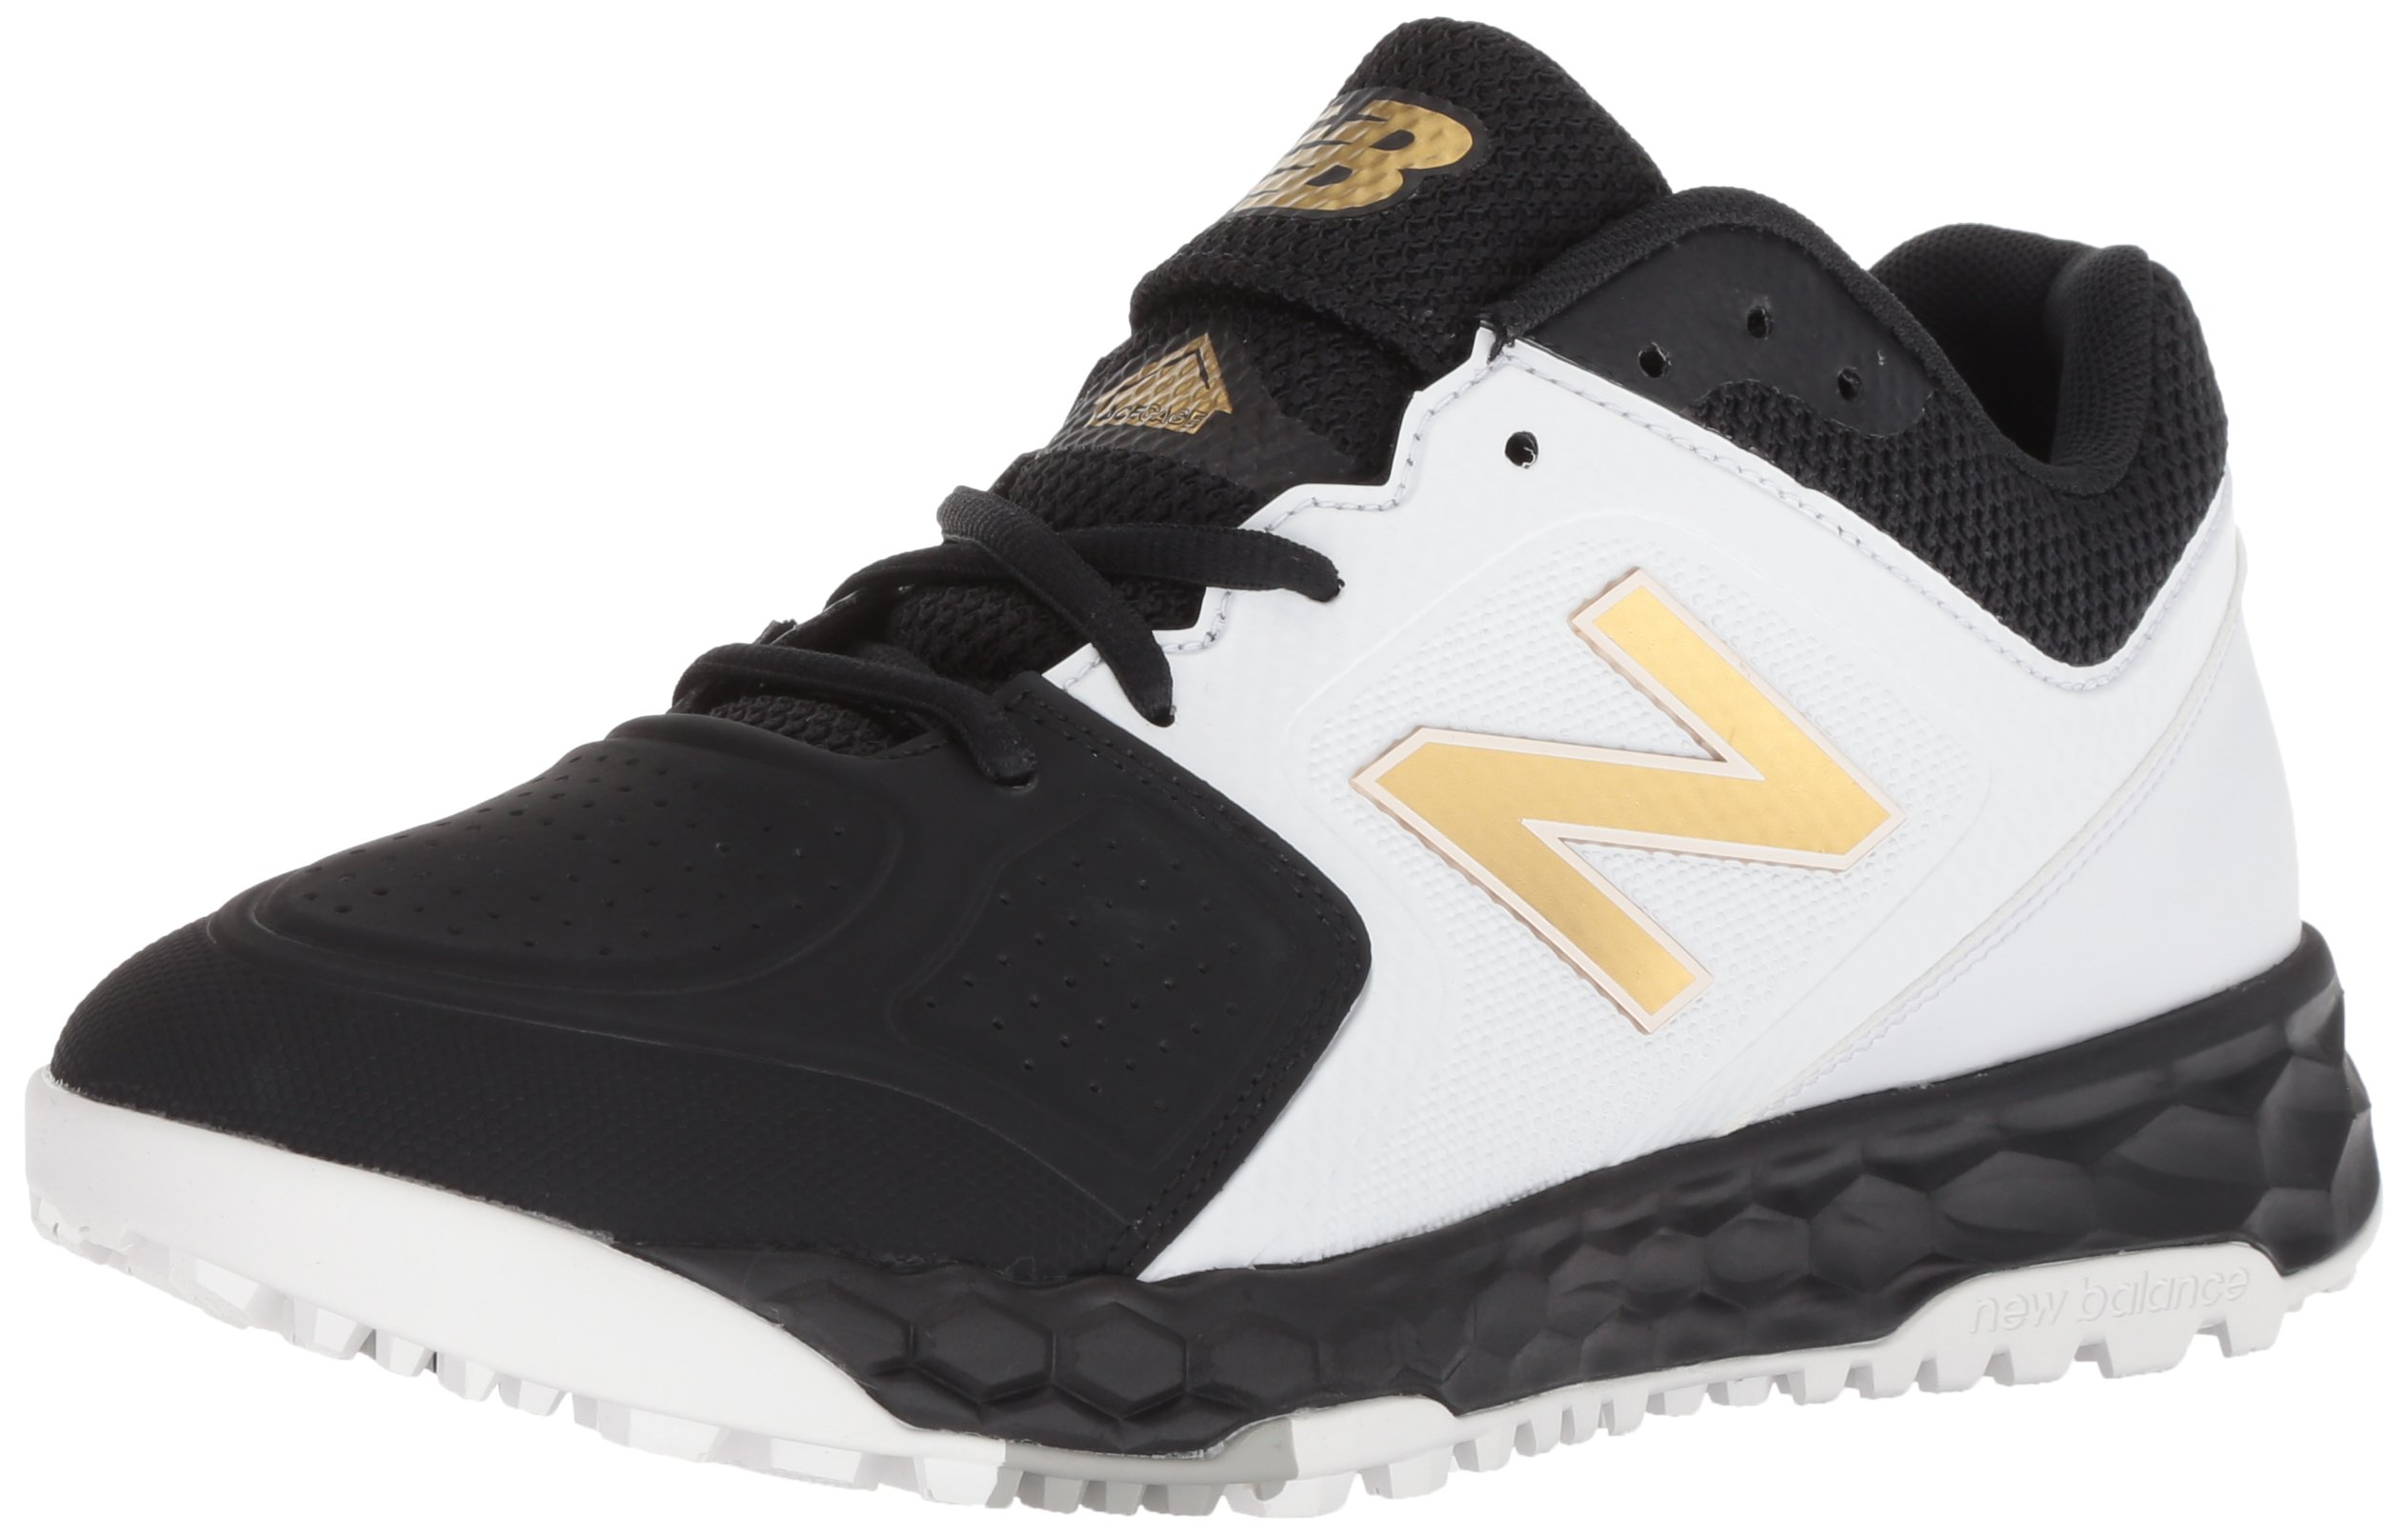 New Balance Women's Velo V1 Turf Softball Shoe, Black/White, 8.5 D US by New Balance